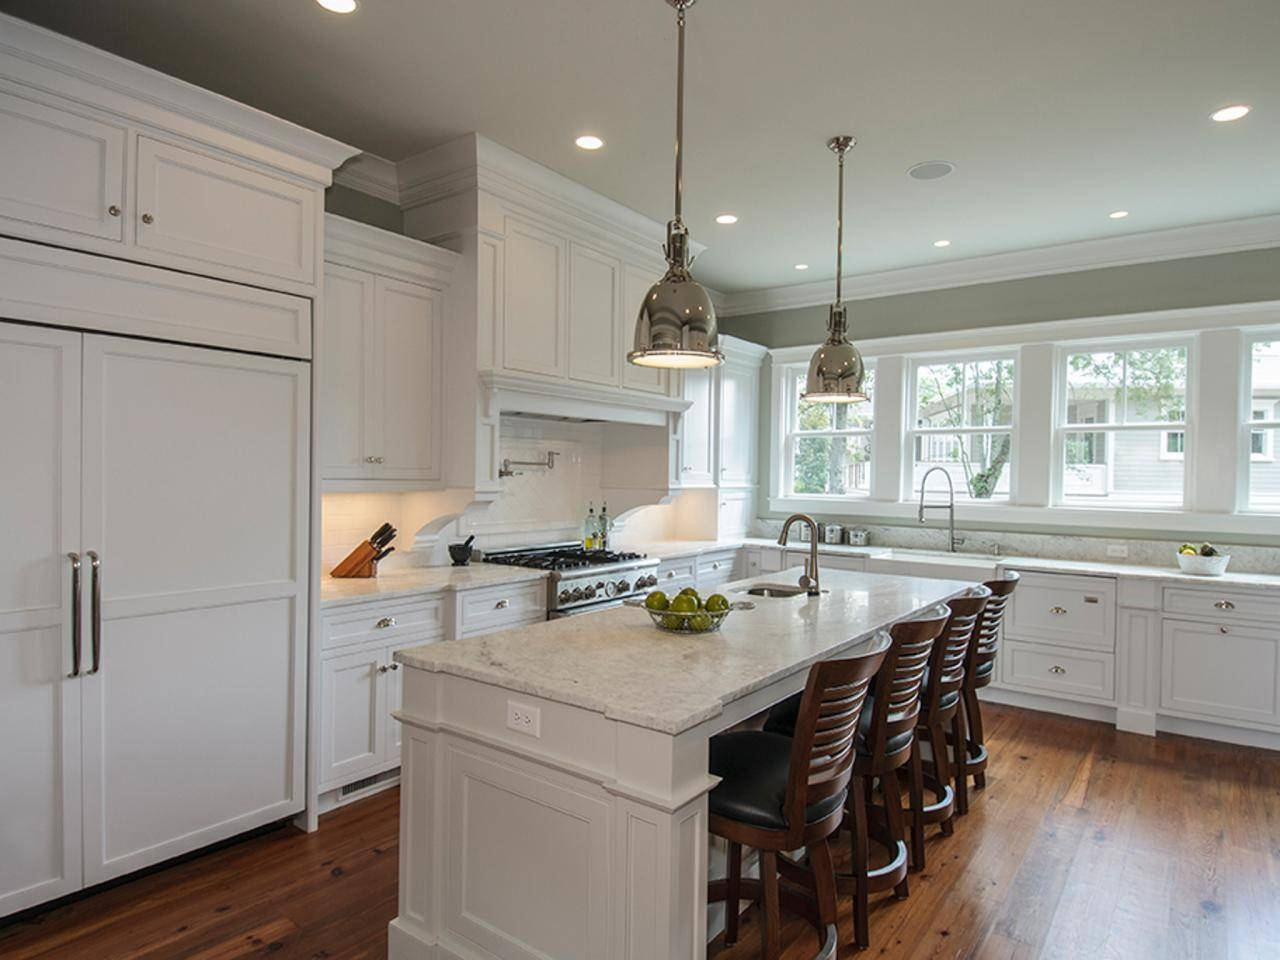 Kitchen Pendant Lighting (View 7 of 15)